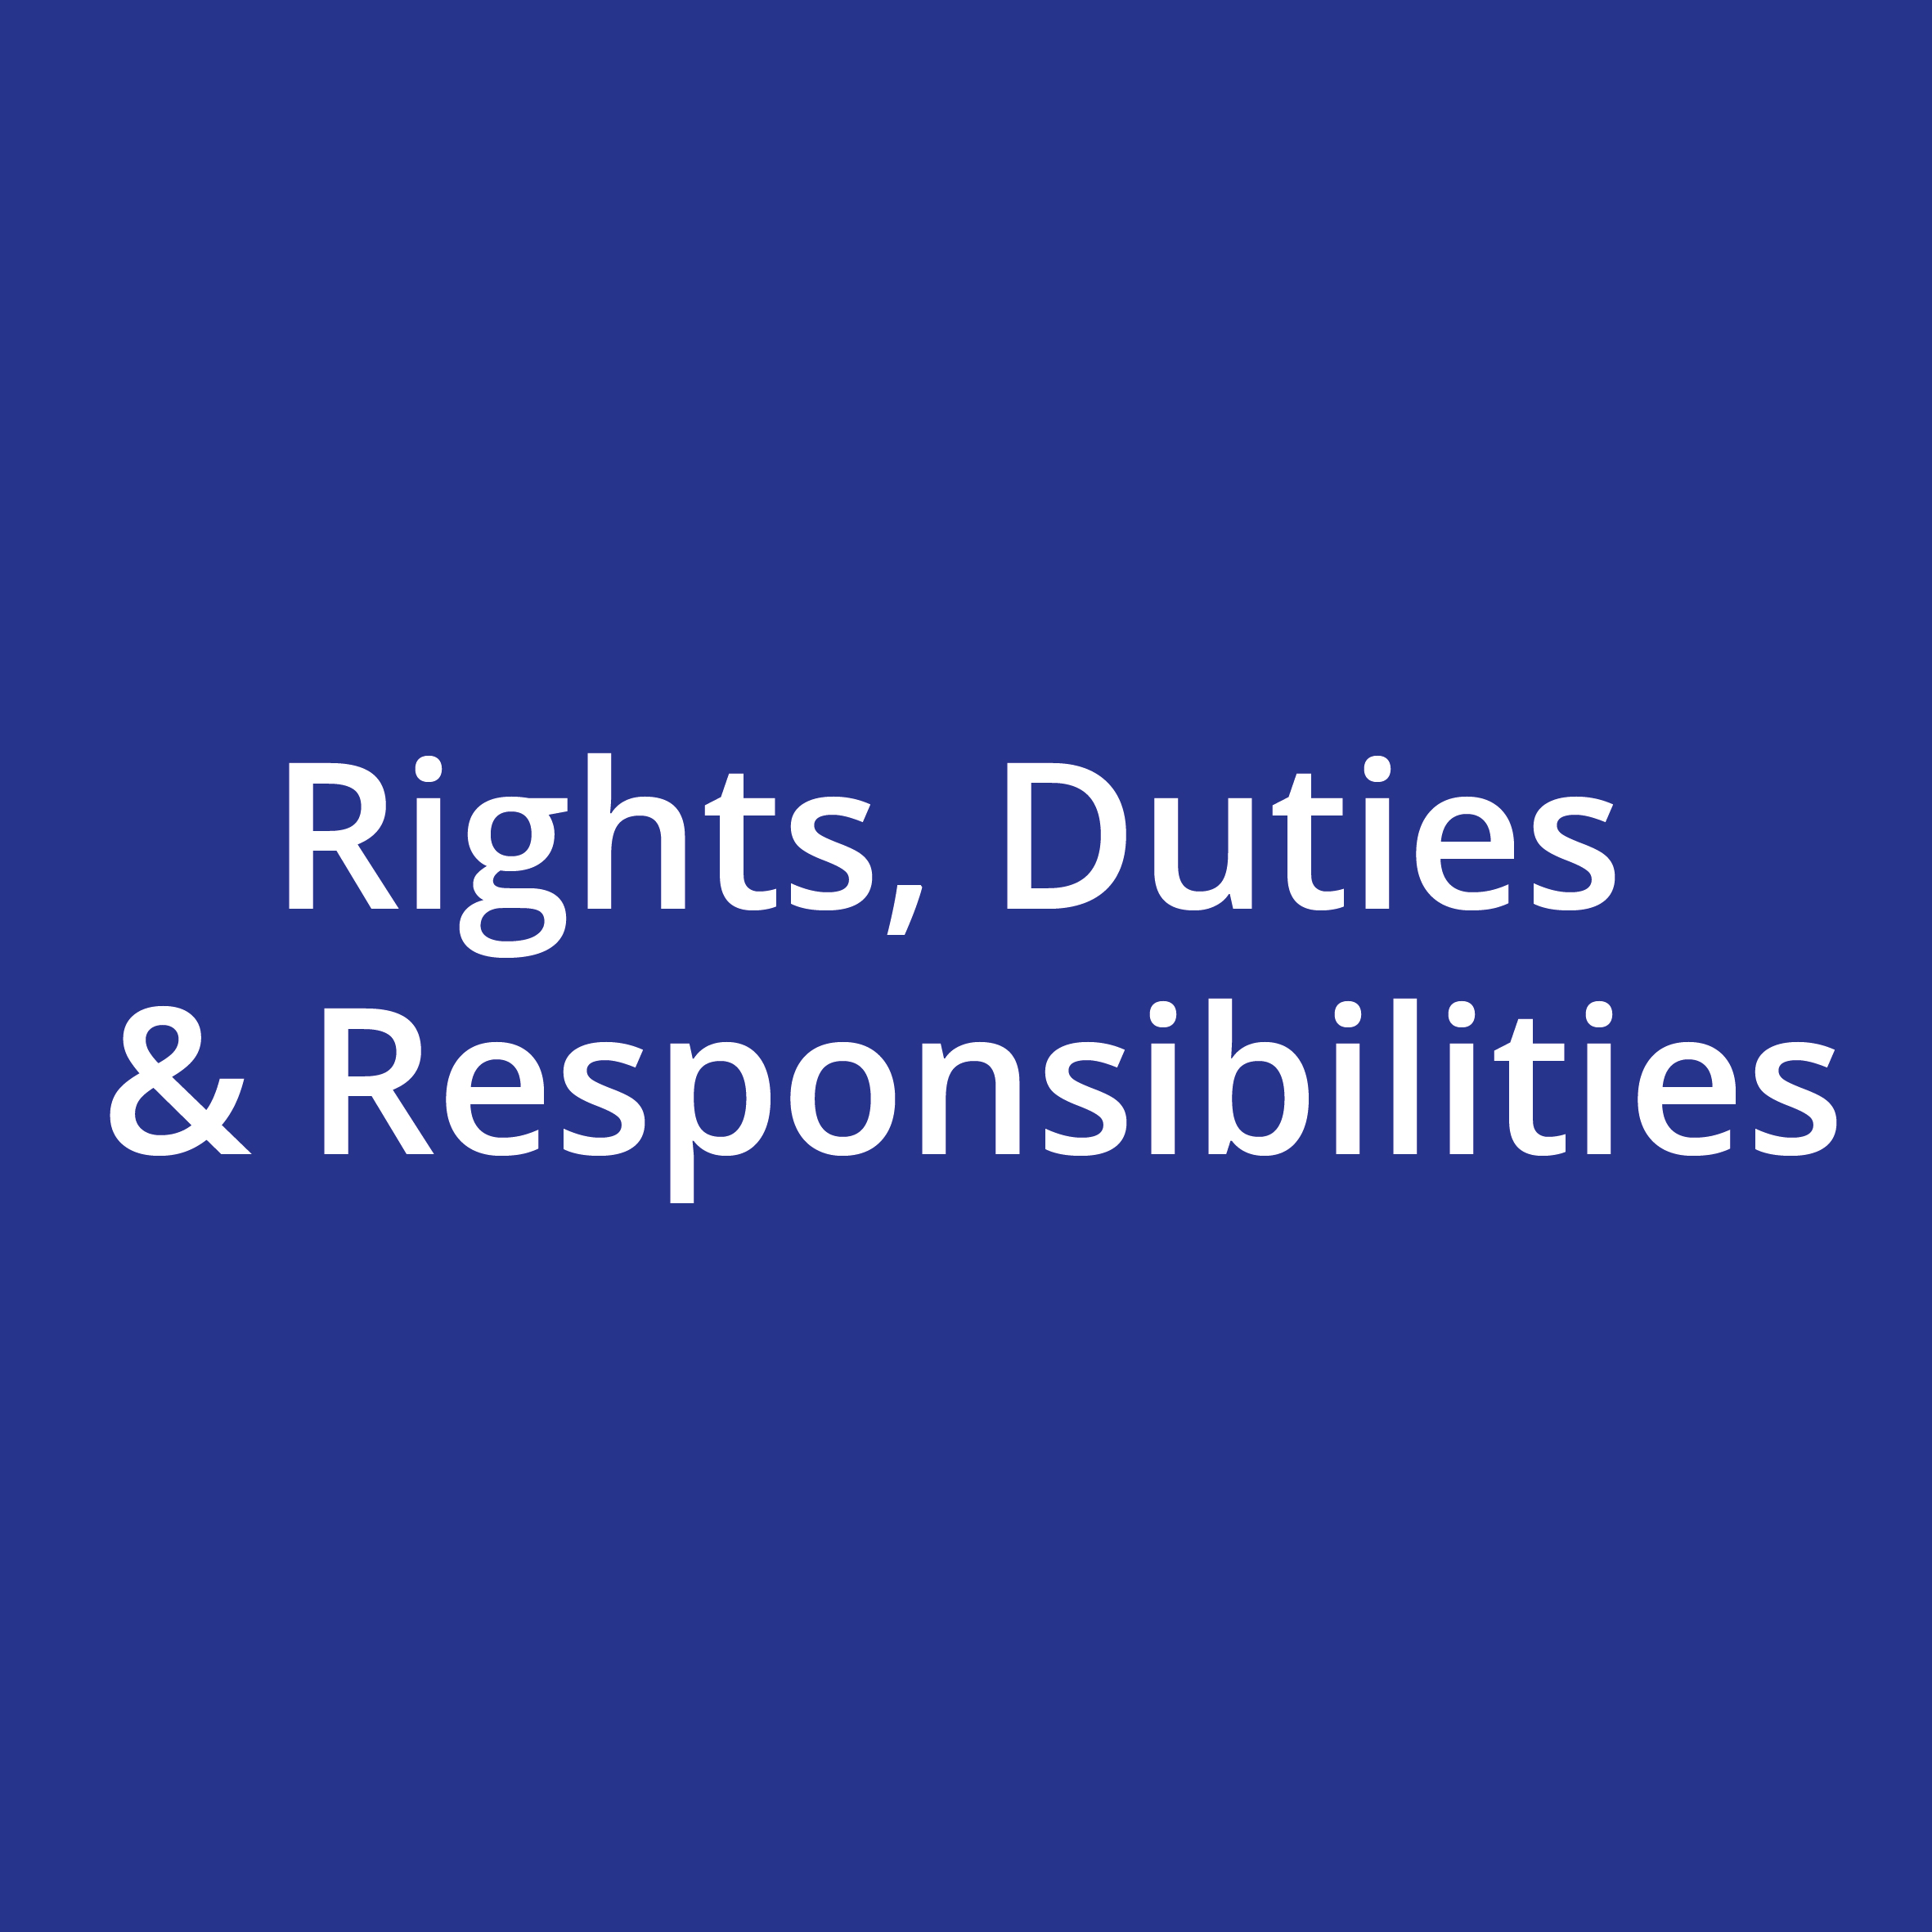 Rights, Duties & Responsibilities